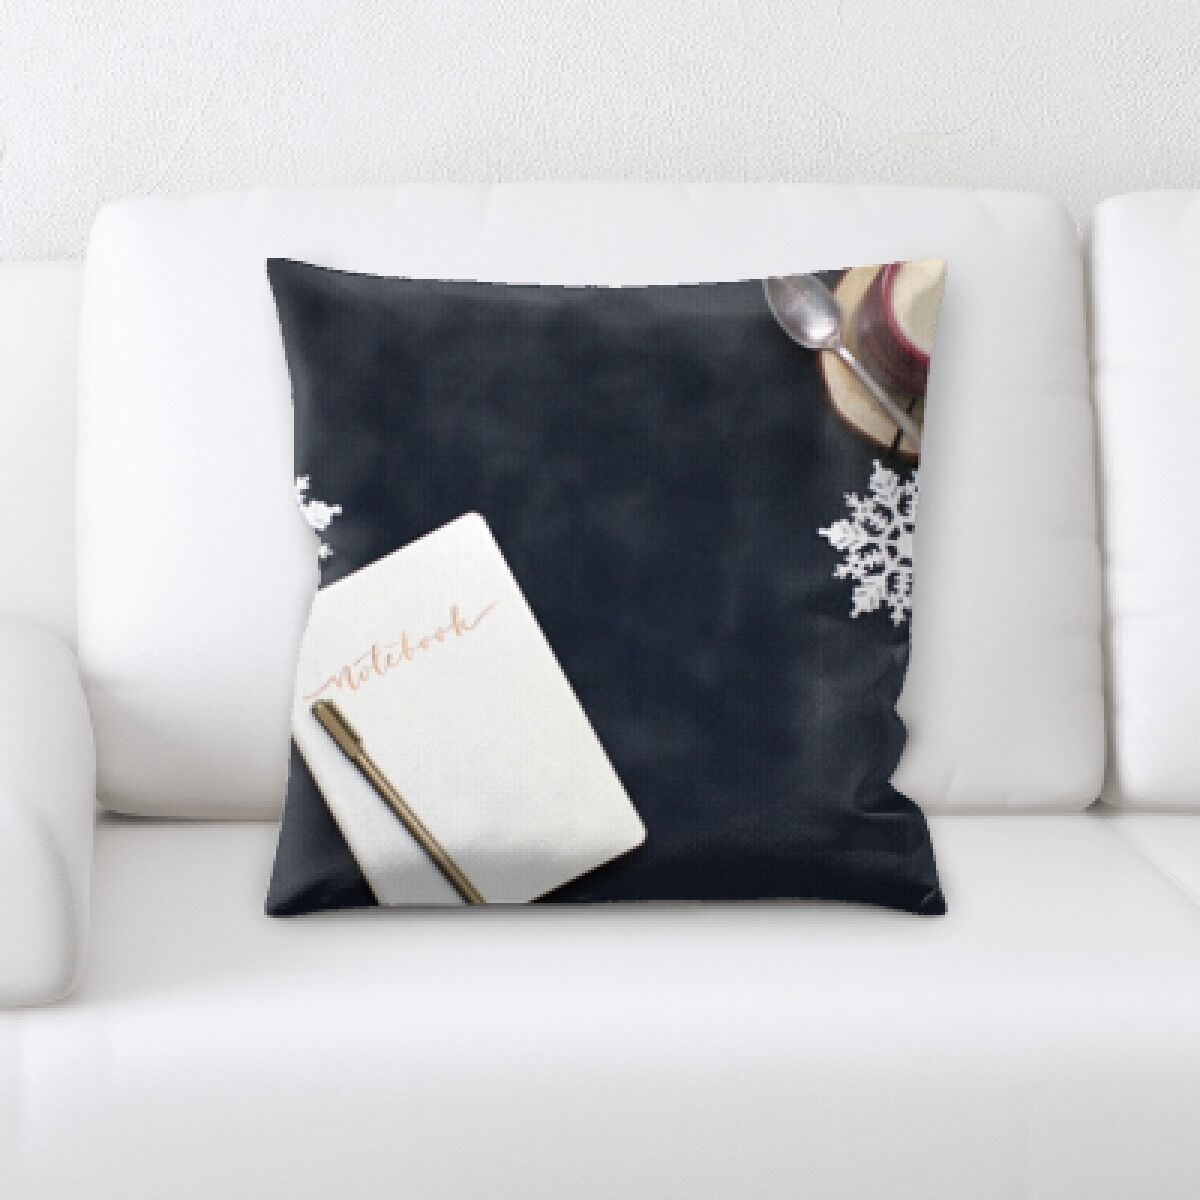 Johnone Coffee and Notebook Throw Pillow